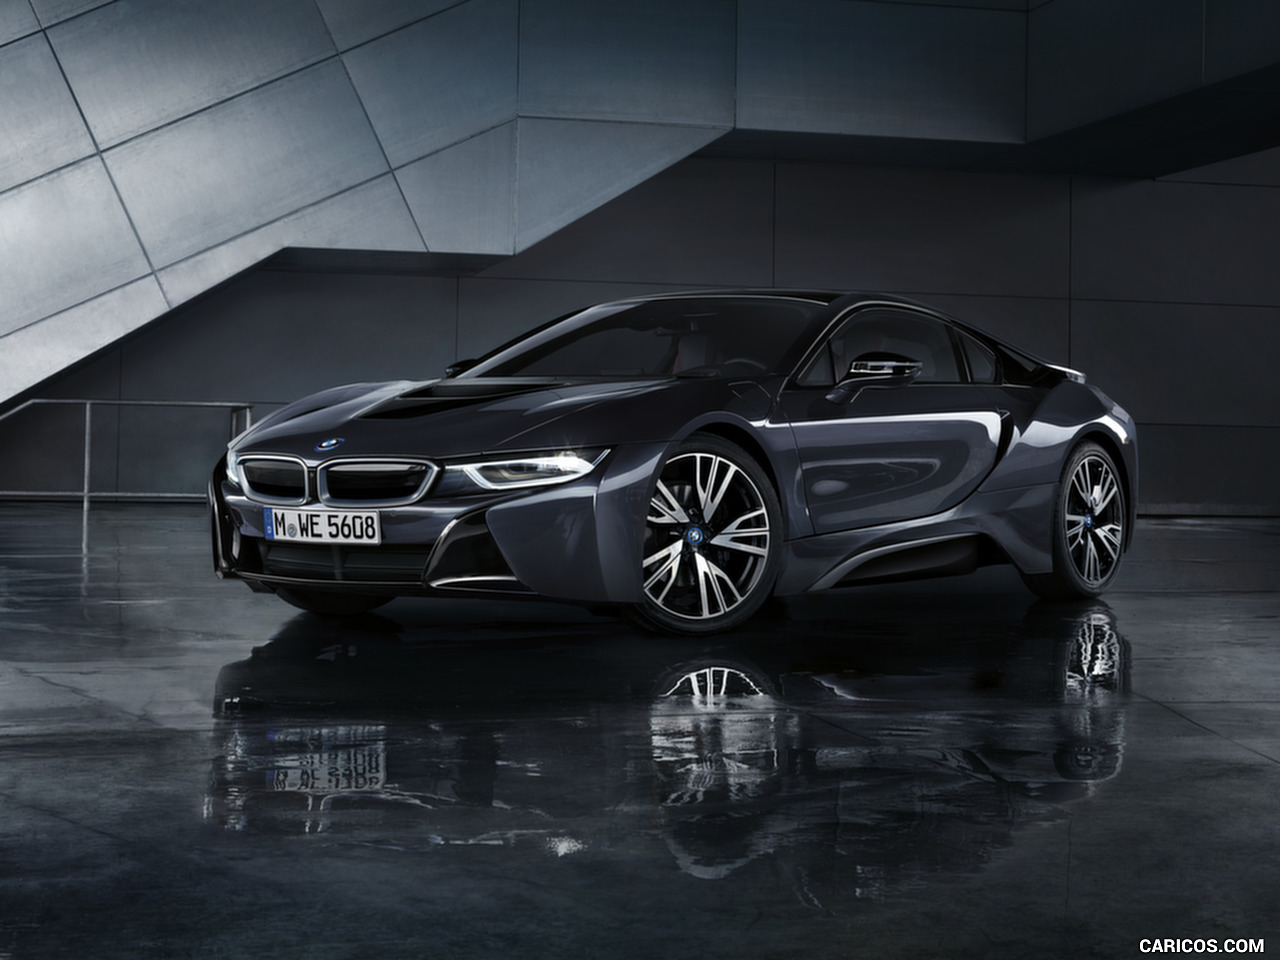 Wallpaper Bmw 7 Series Black Ice Edition 2017 4k: 2017 BMW I8 Wallpapers